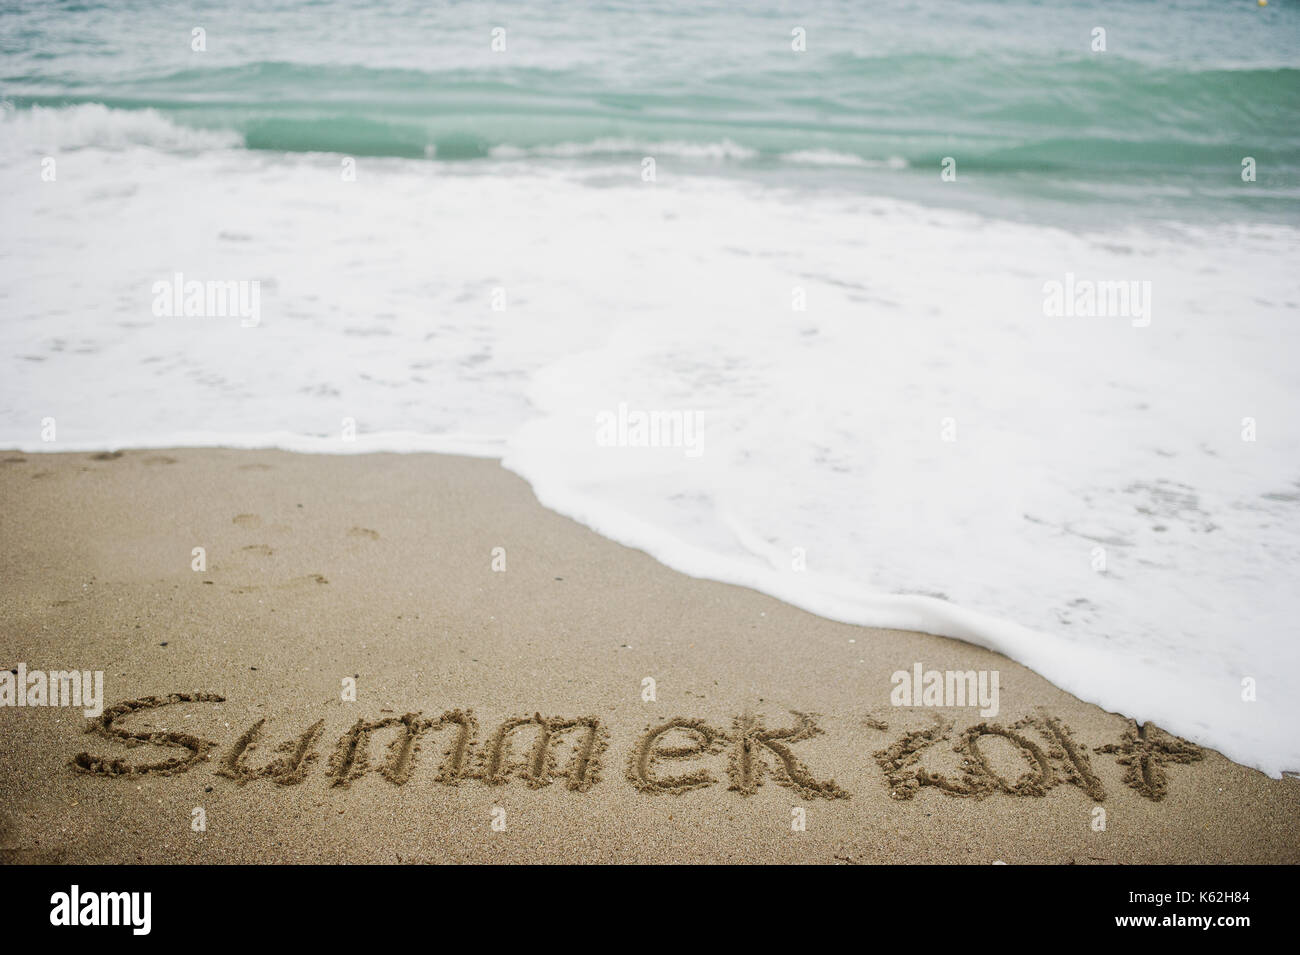 Summer 2017 End. New Year 2018 Is Coming Concept. Sea And Sand.